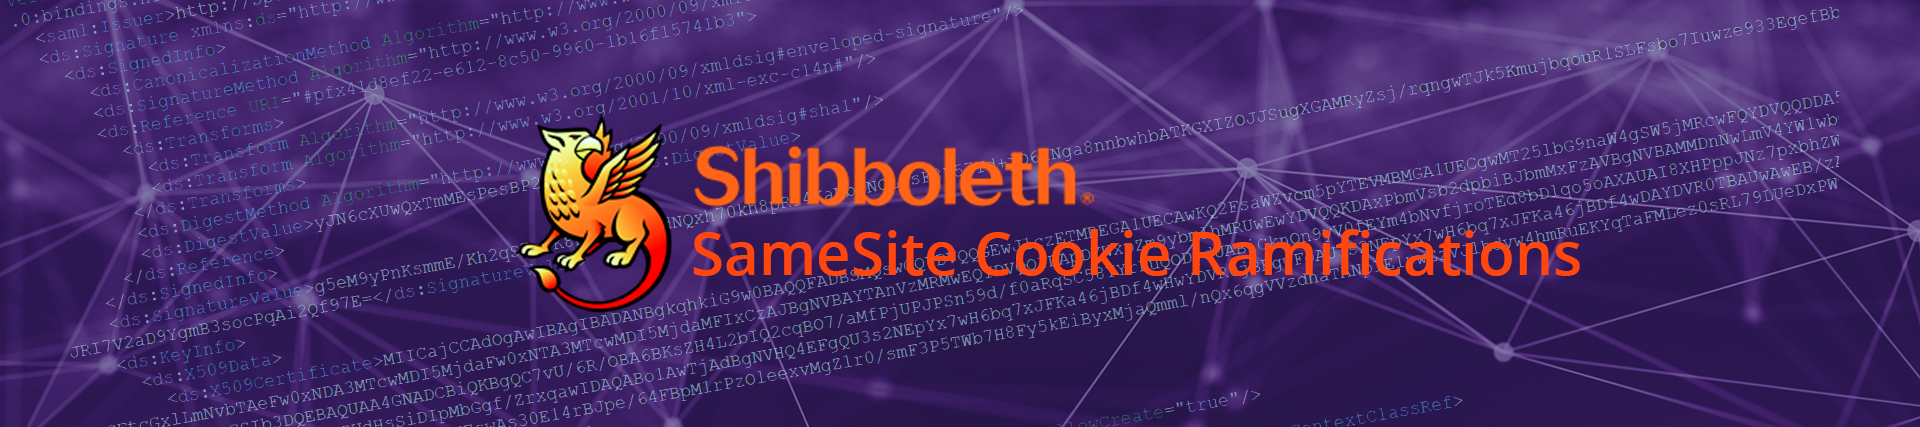 SameSite Cookies and Shibboleth